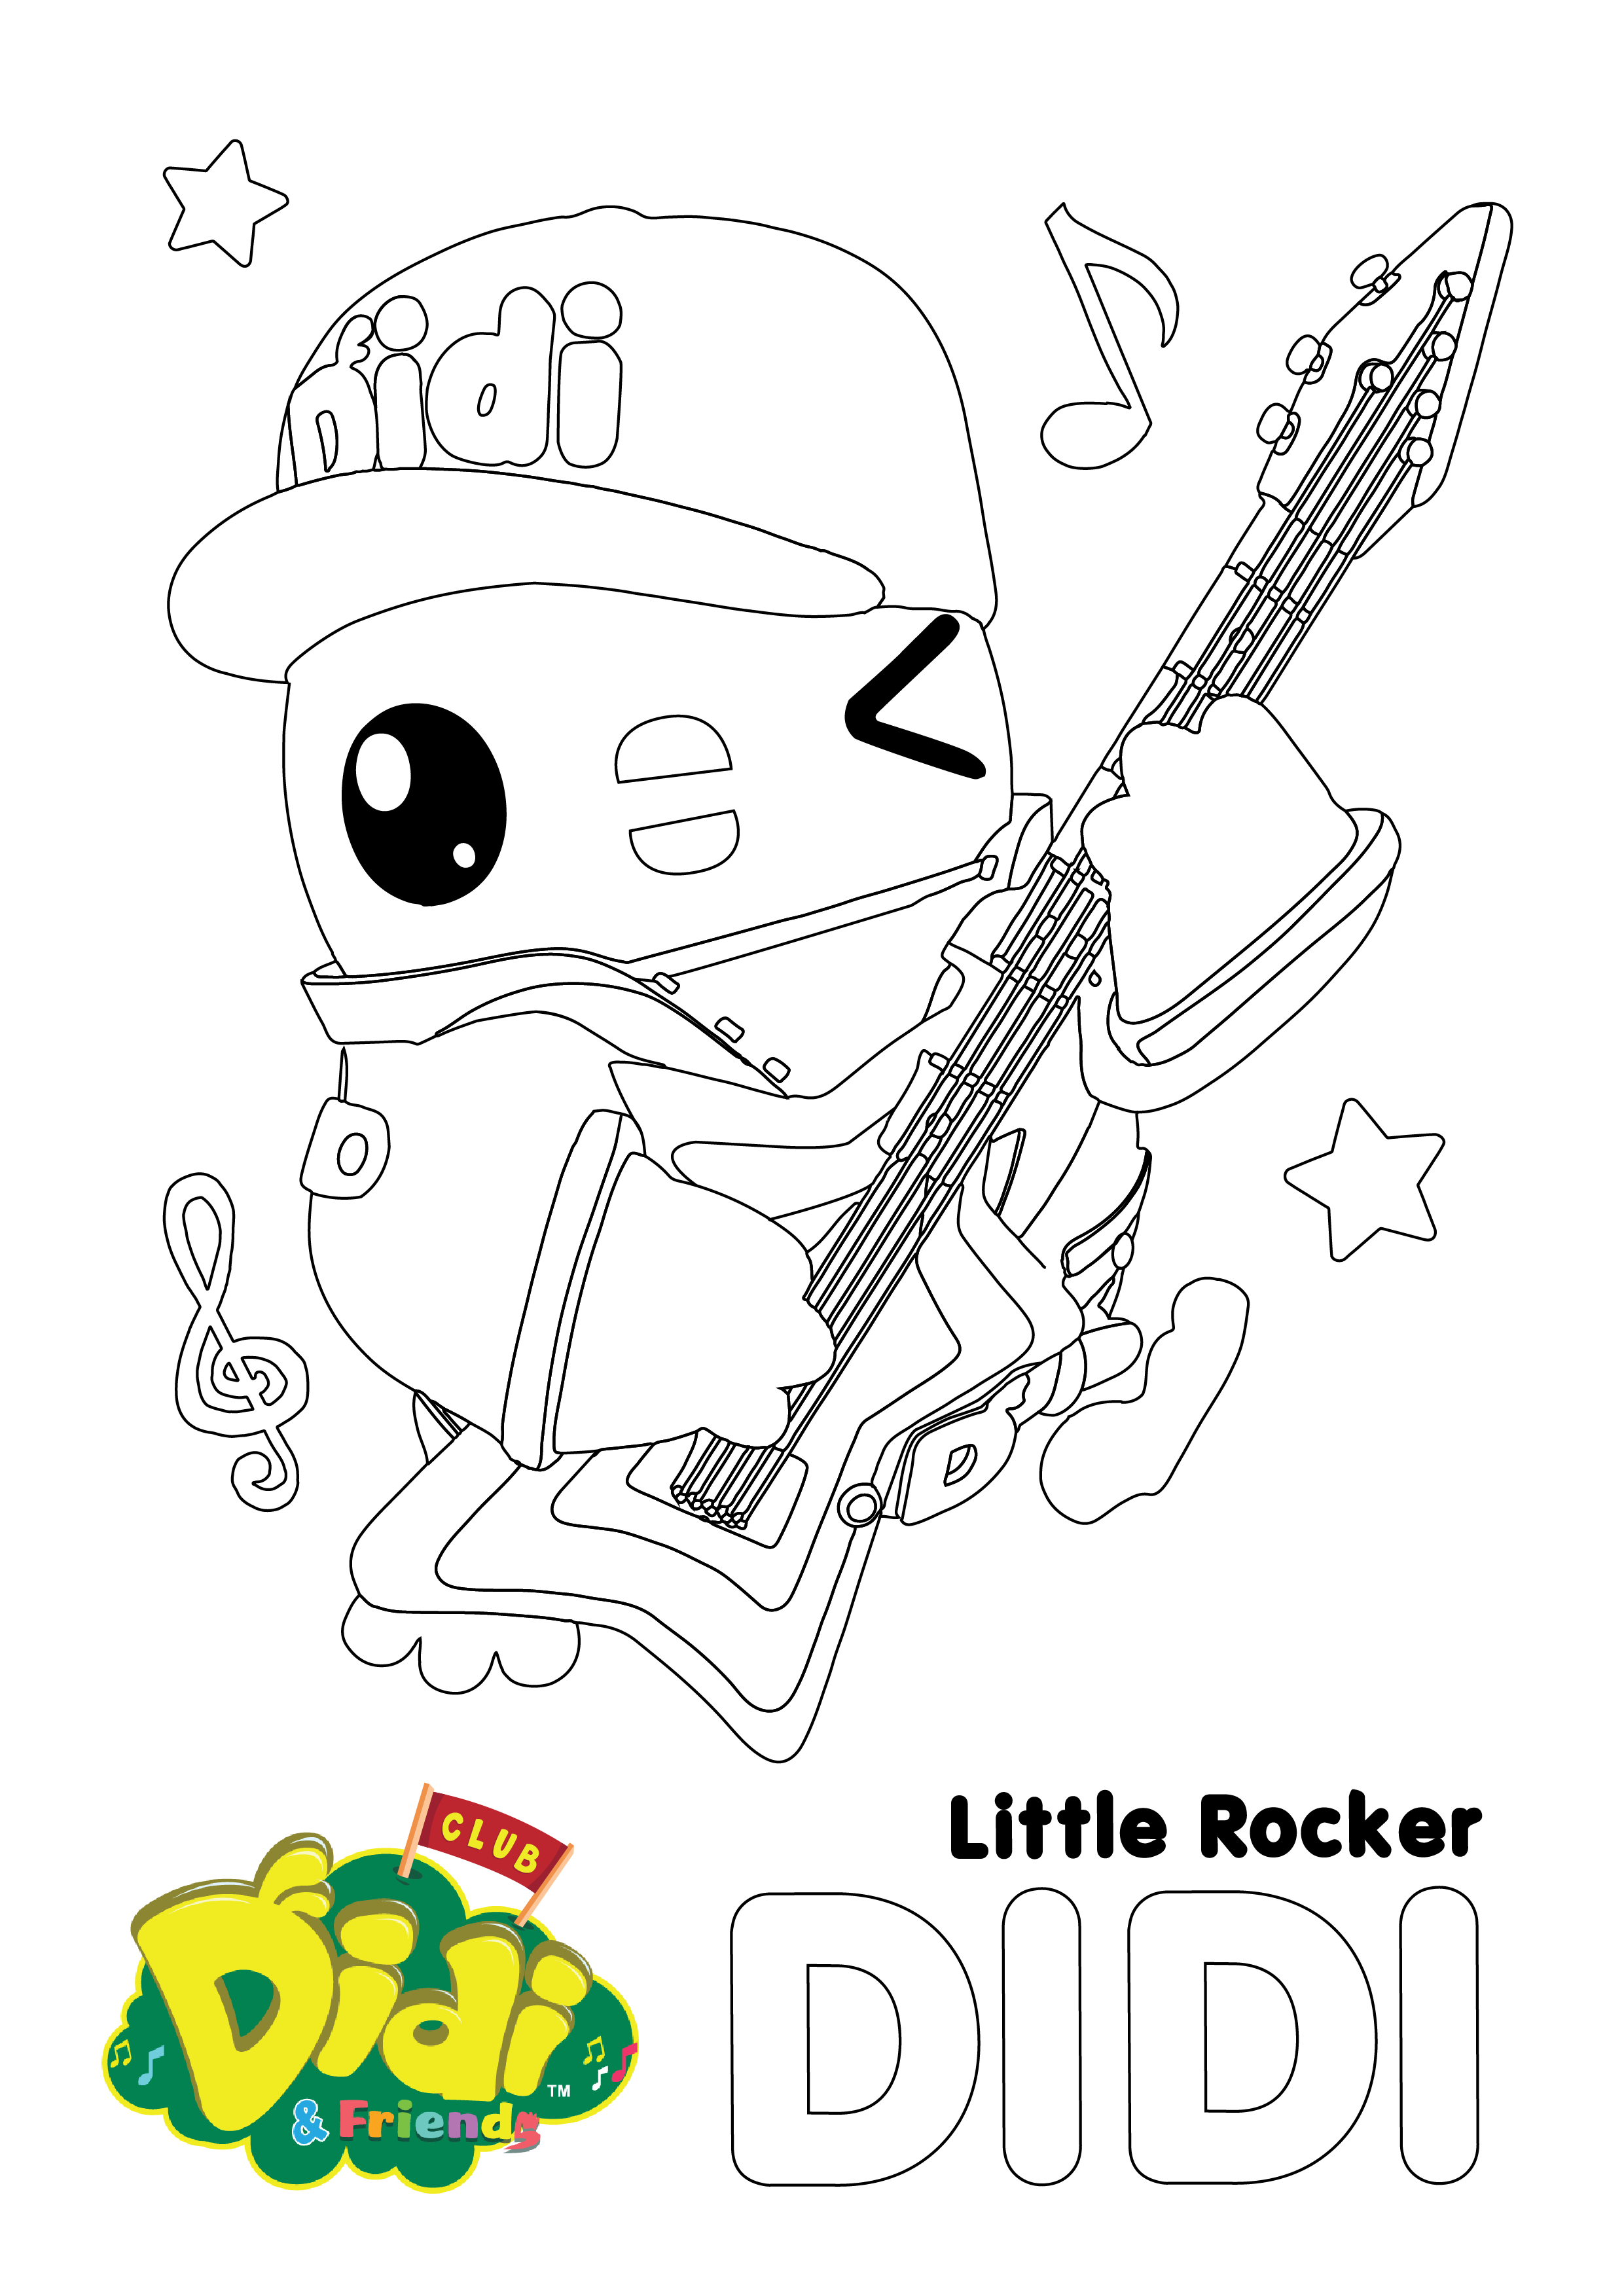 Free Colouring Sheet Didi Friends Nursery Rhymes For Kids Puppy Coloring Pages Free Printable Coloring Sheets My Little Pony Coloring [ 3508 x 2481 Pixel ]